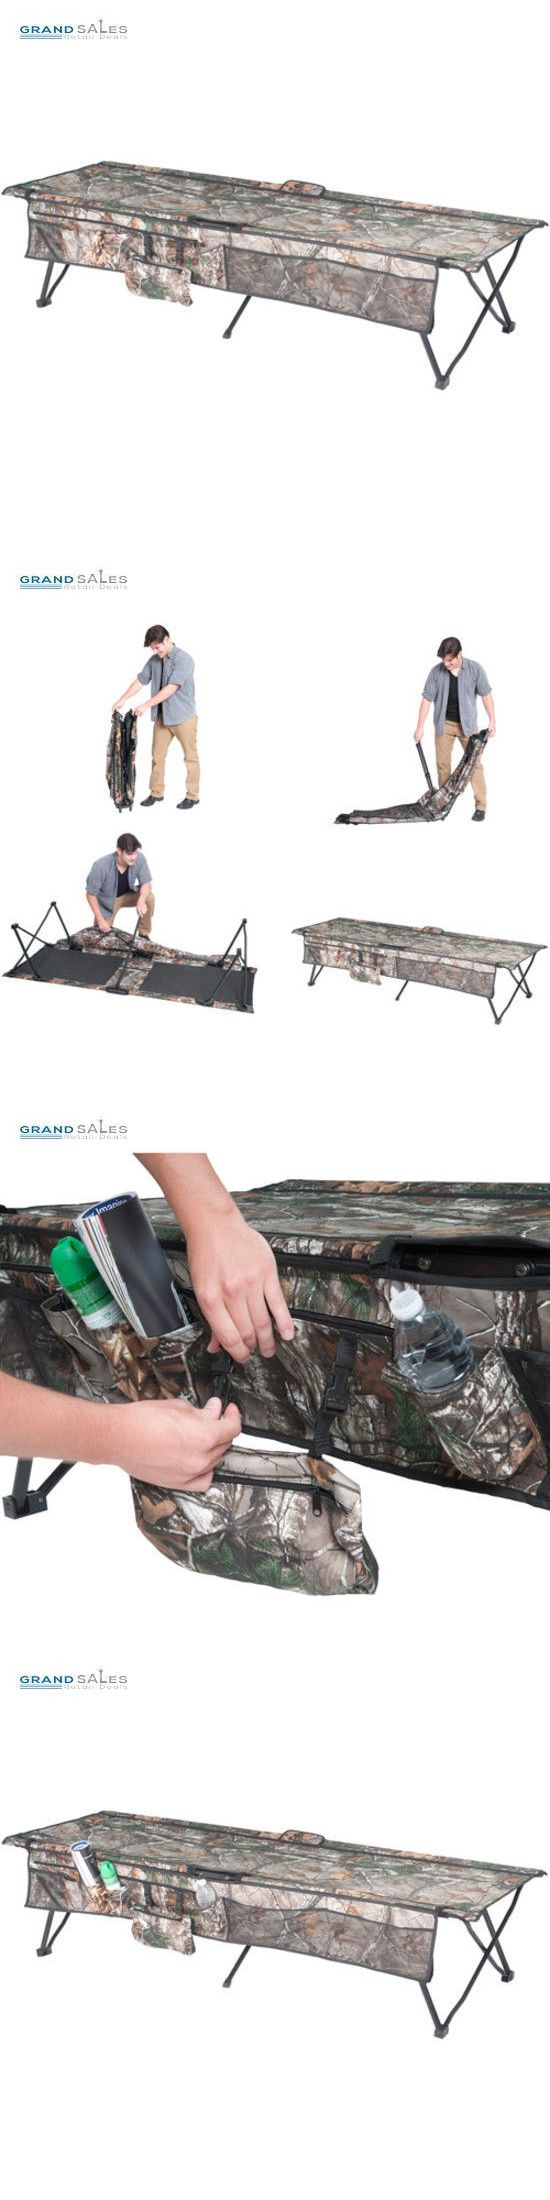 Cots 87099: Camping Cots For Adults Outdoor Sleeping Gear Portable Cot Folding Hunting Bed -> BUY IT NOW ONLY: $54.6 on eBay!